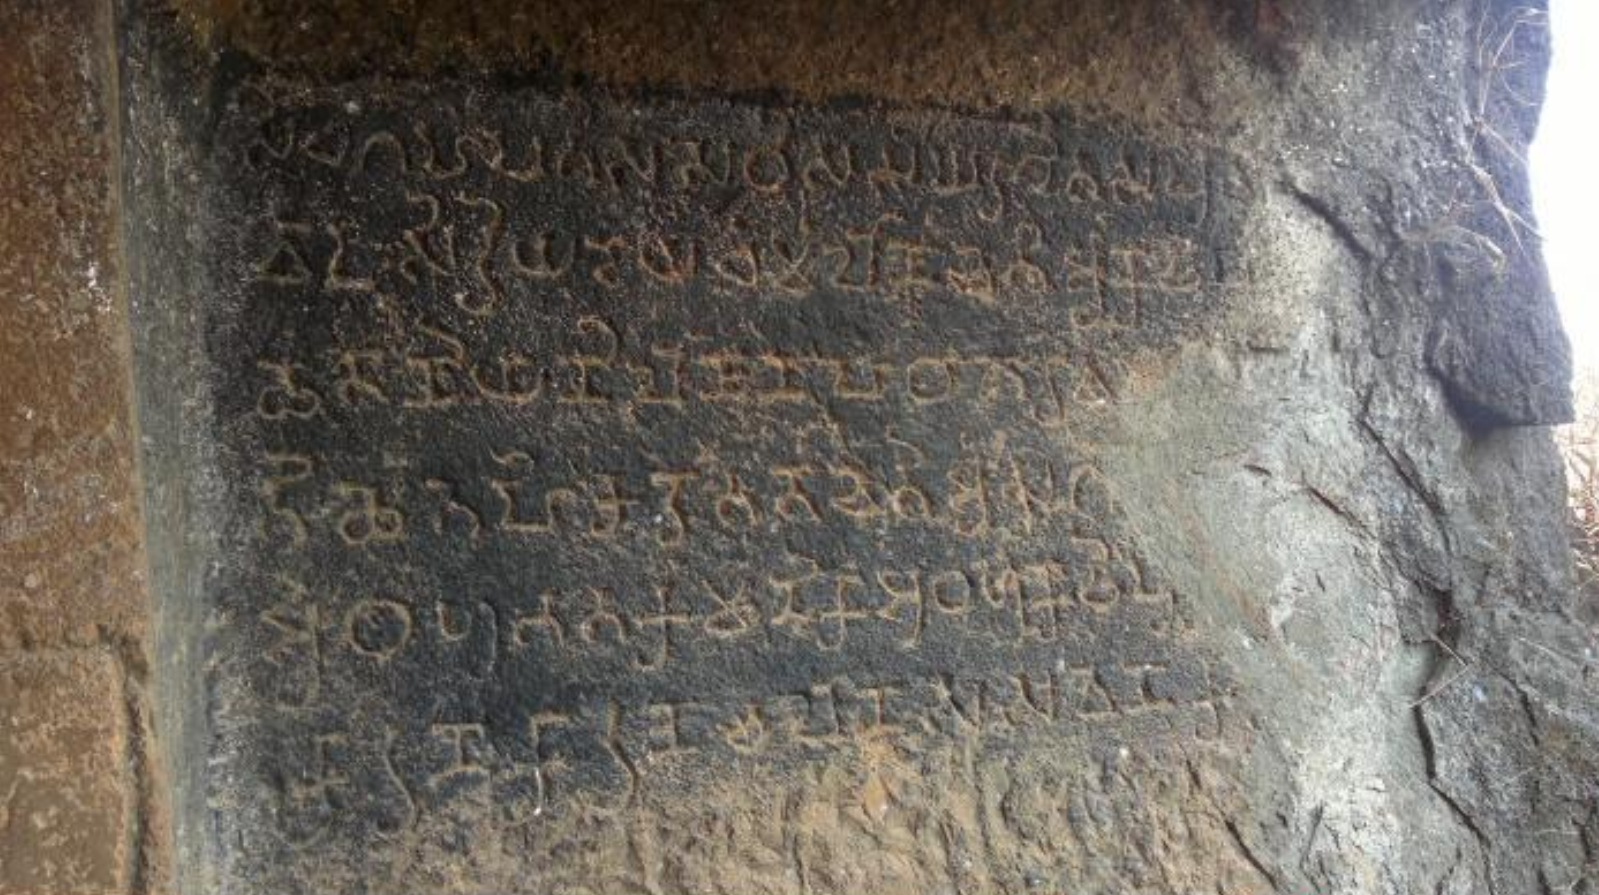 Gandhapale caves inscription.jpg